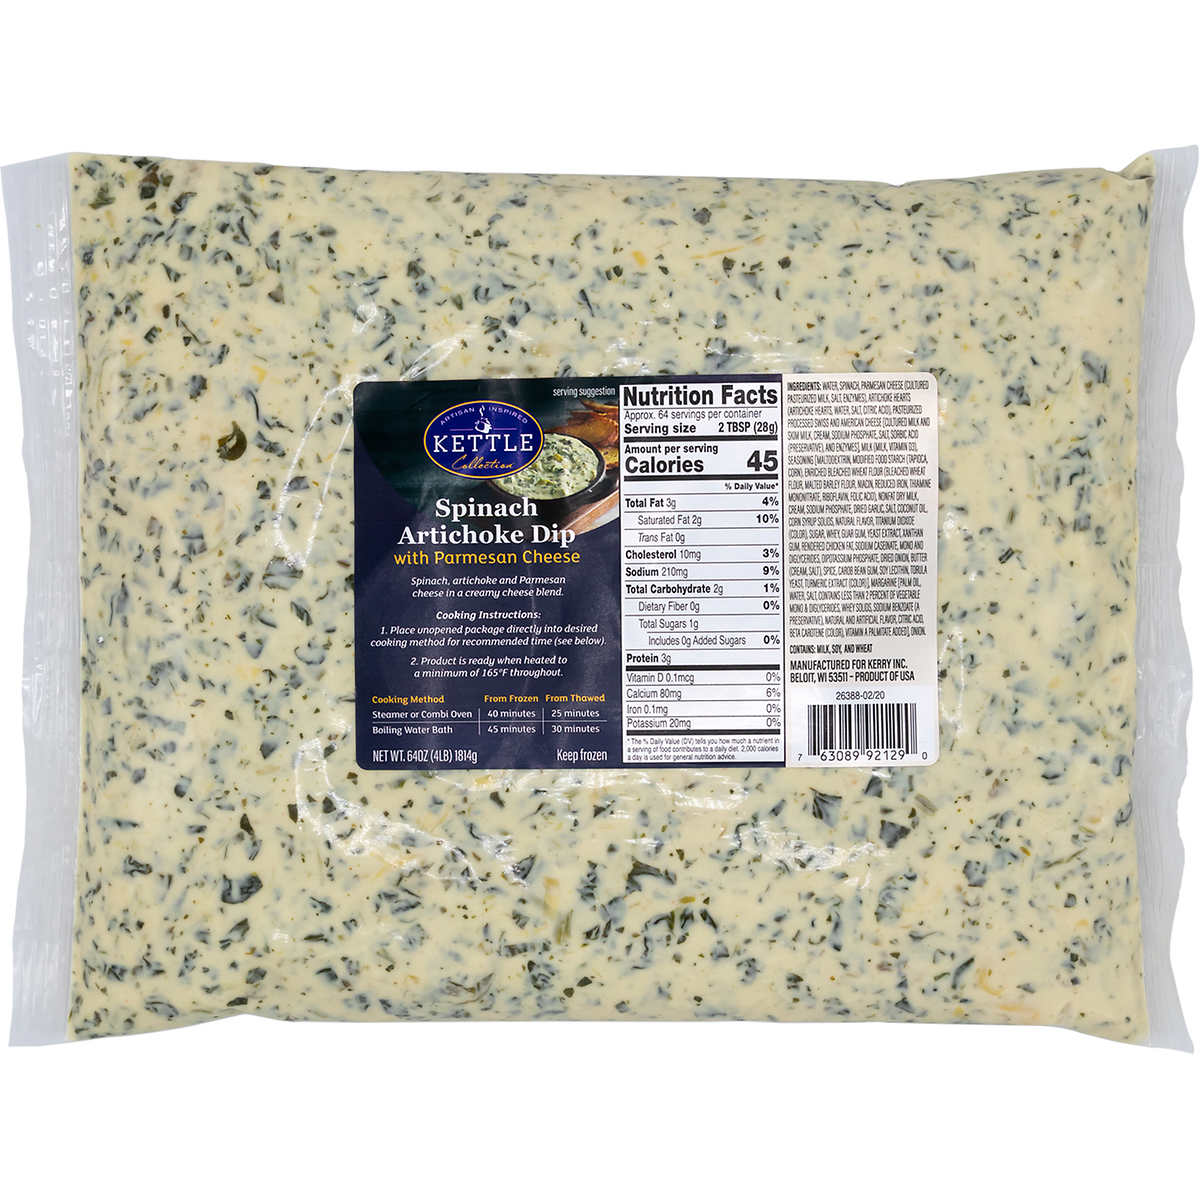 Kettle Collection Spinach Artichoke Dip With Parmesan Cheese 4 Lbs